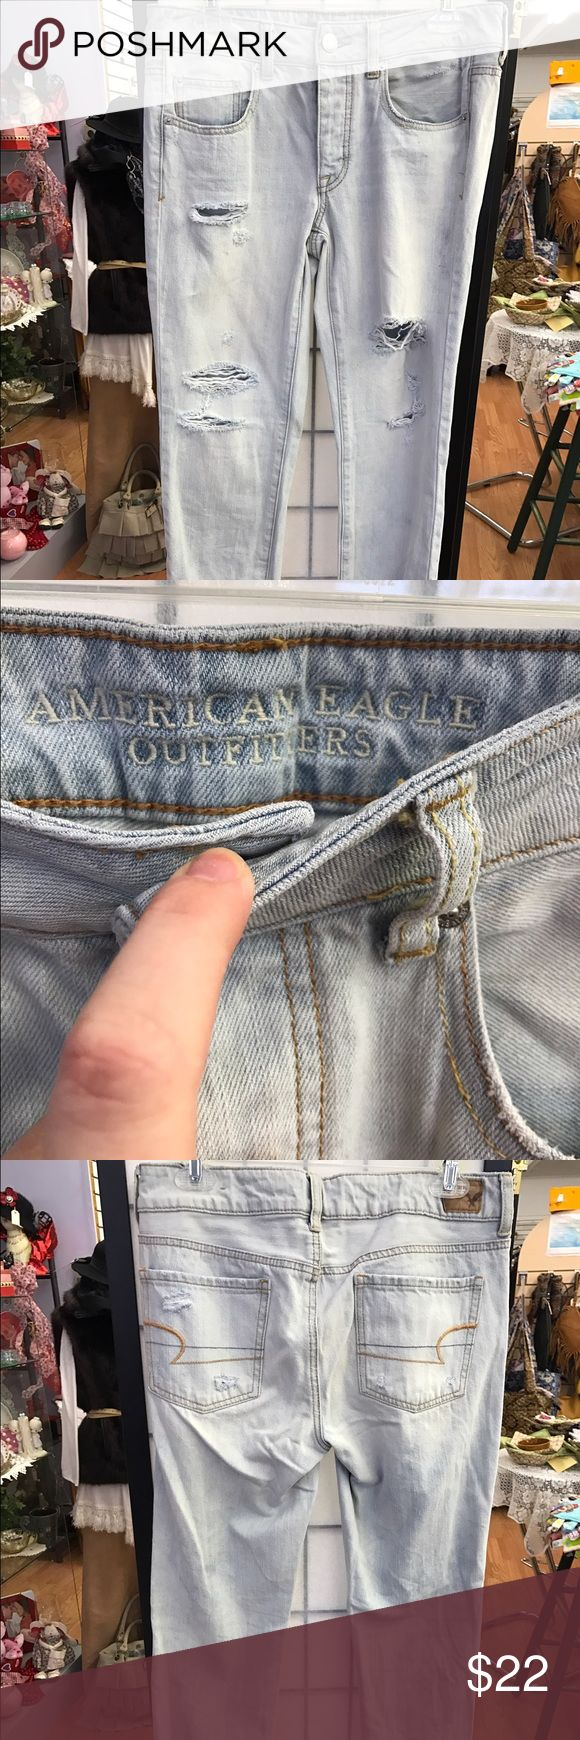 NWOT light wash American eagle boy crop size 4 Purchased online and because I'm curvy, they don't fit right. NWOT. Boy crop. Light wash Capri. Size 4 NEVER WORN 🅿️🅿️ available American Eagle Outfitters Jeans Ankle & Cropped